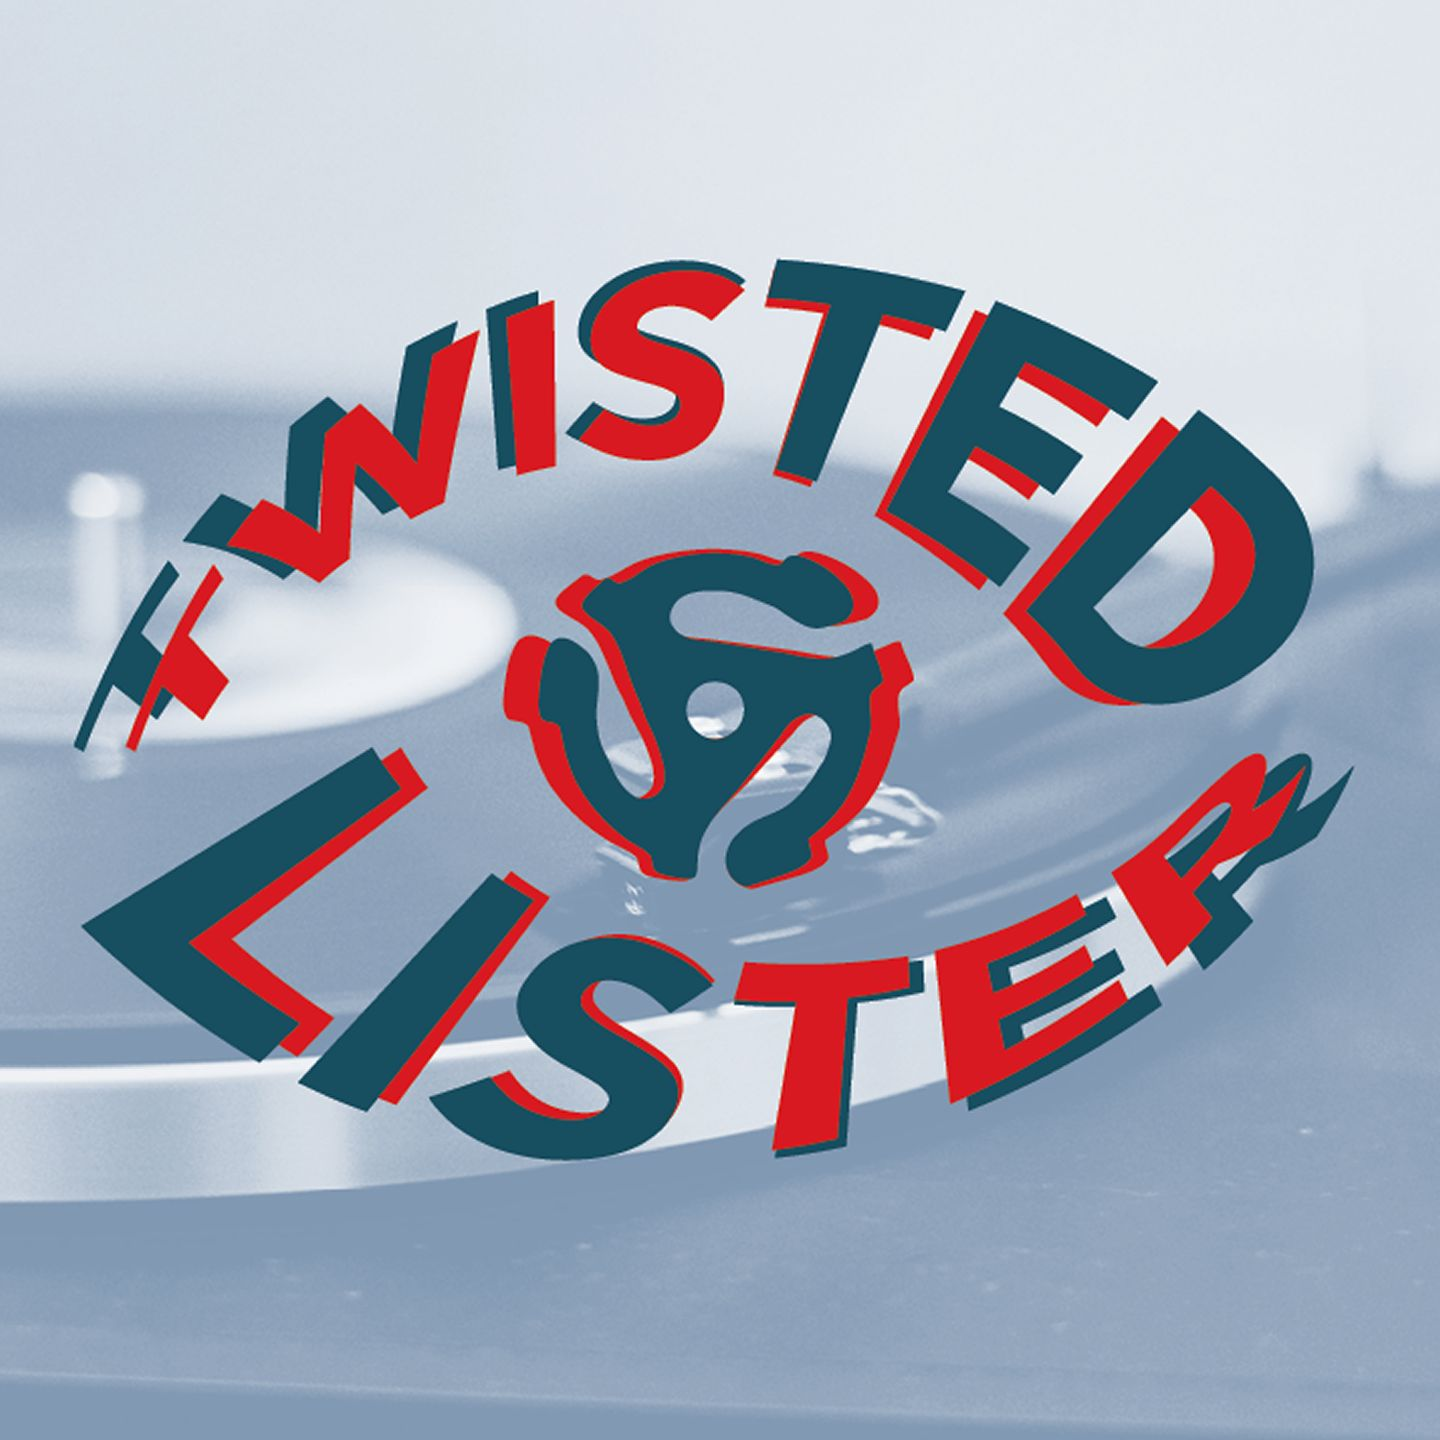 Twisted Lister